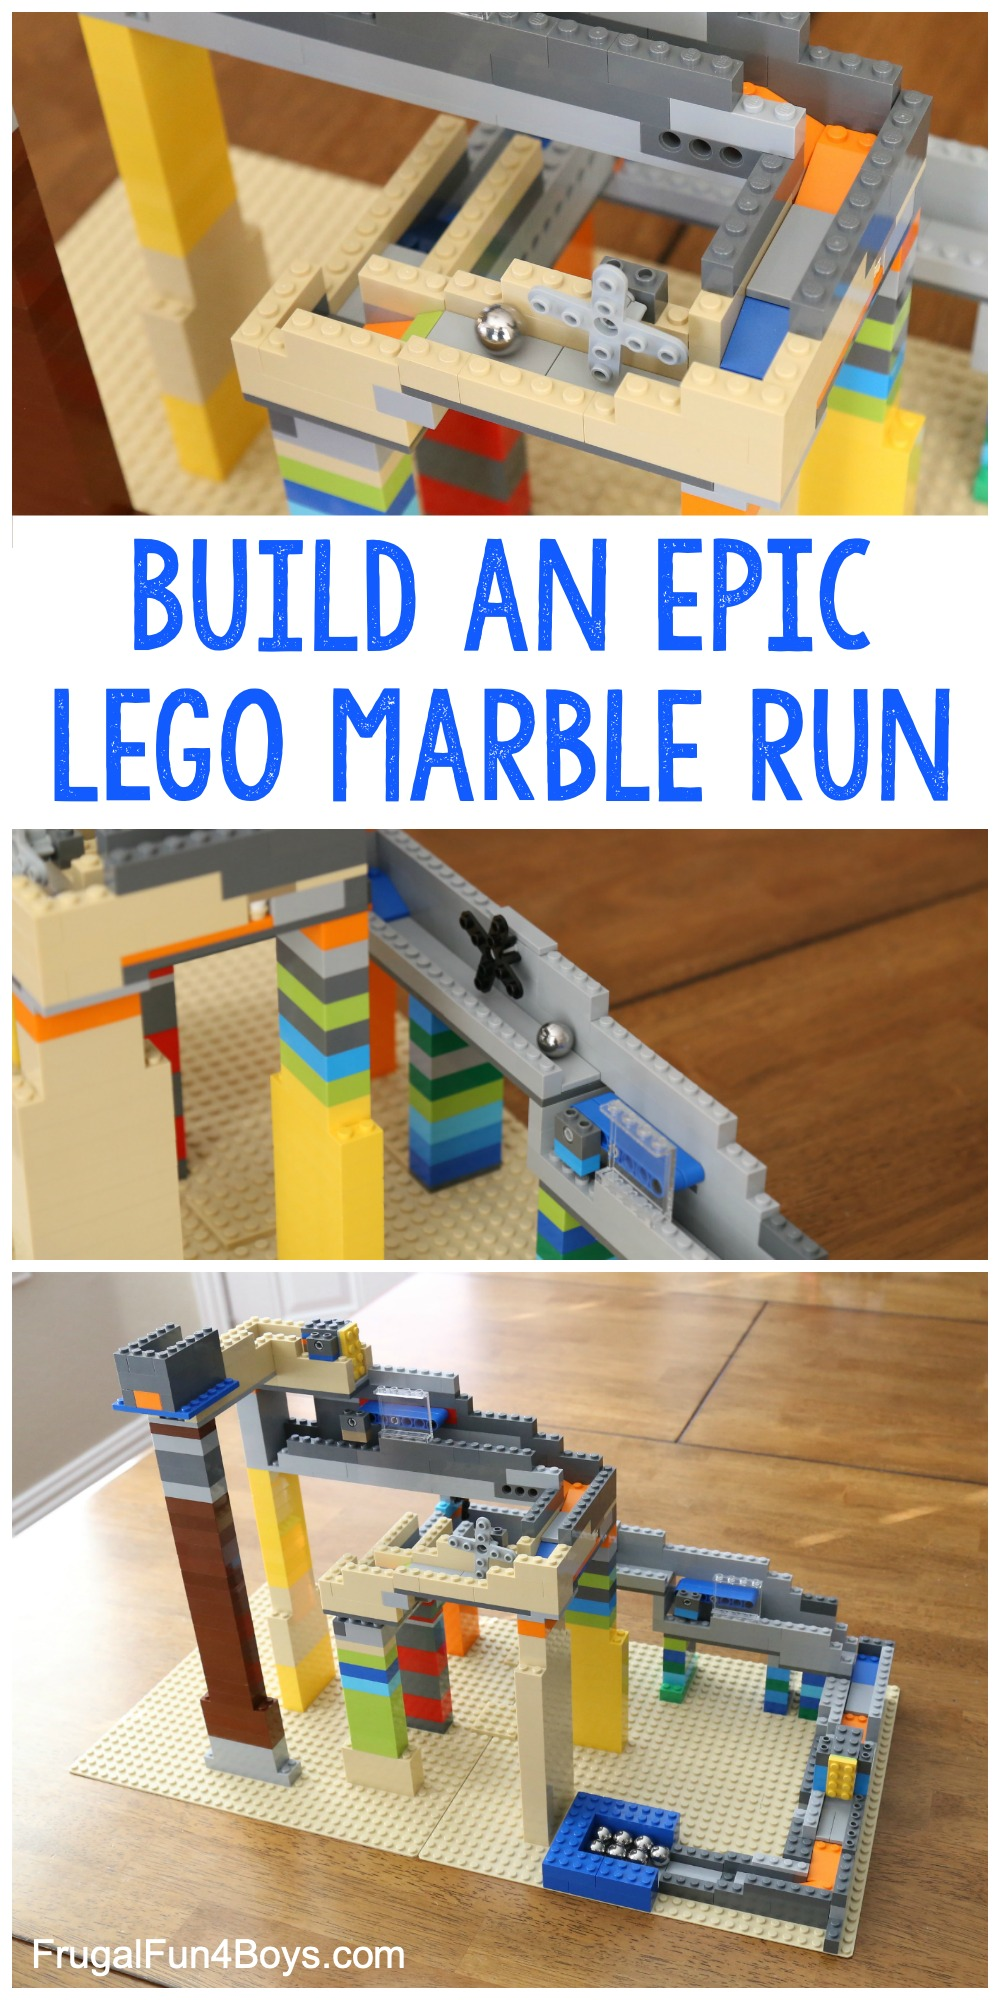 How To Build An Epic Lego Marble Run Frugal Fun For Boys And Girls